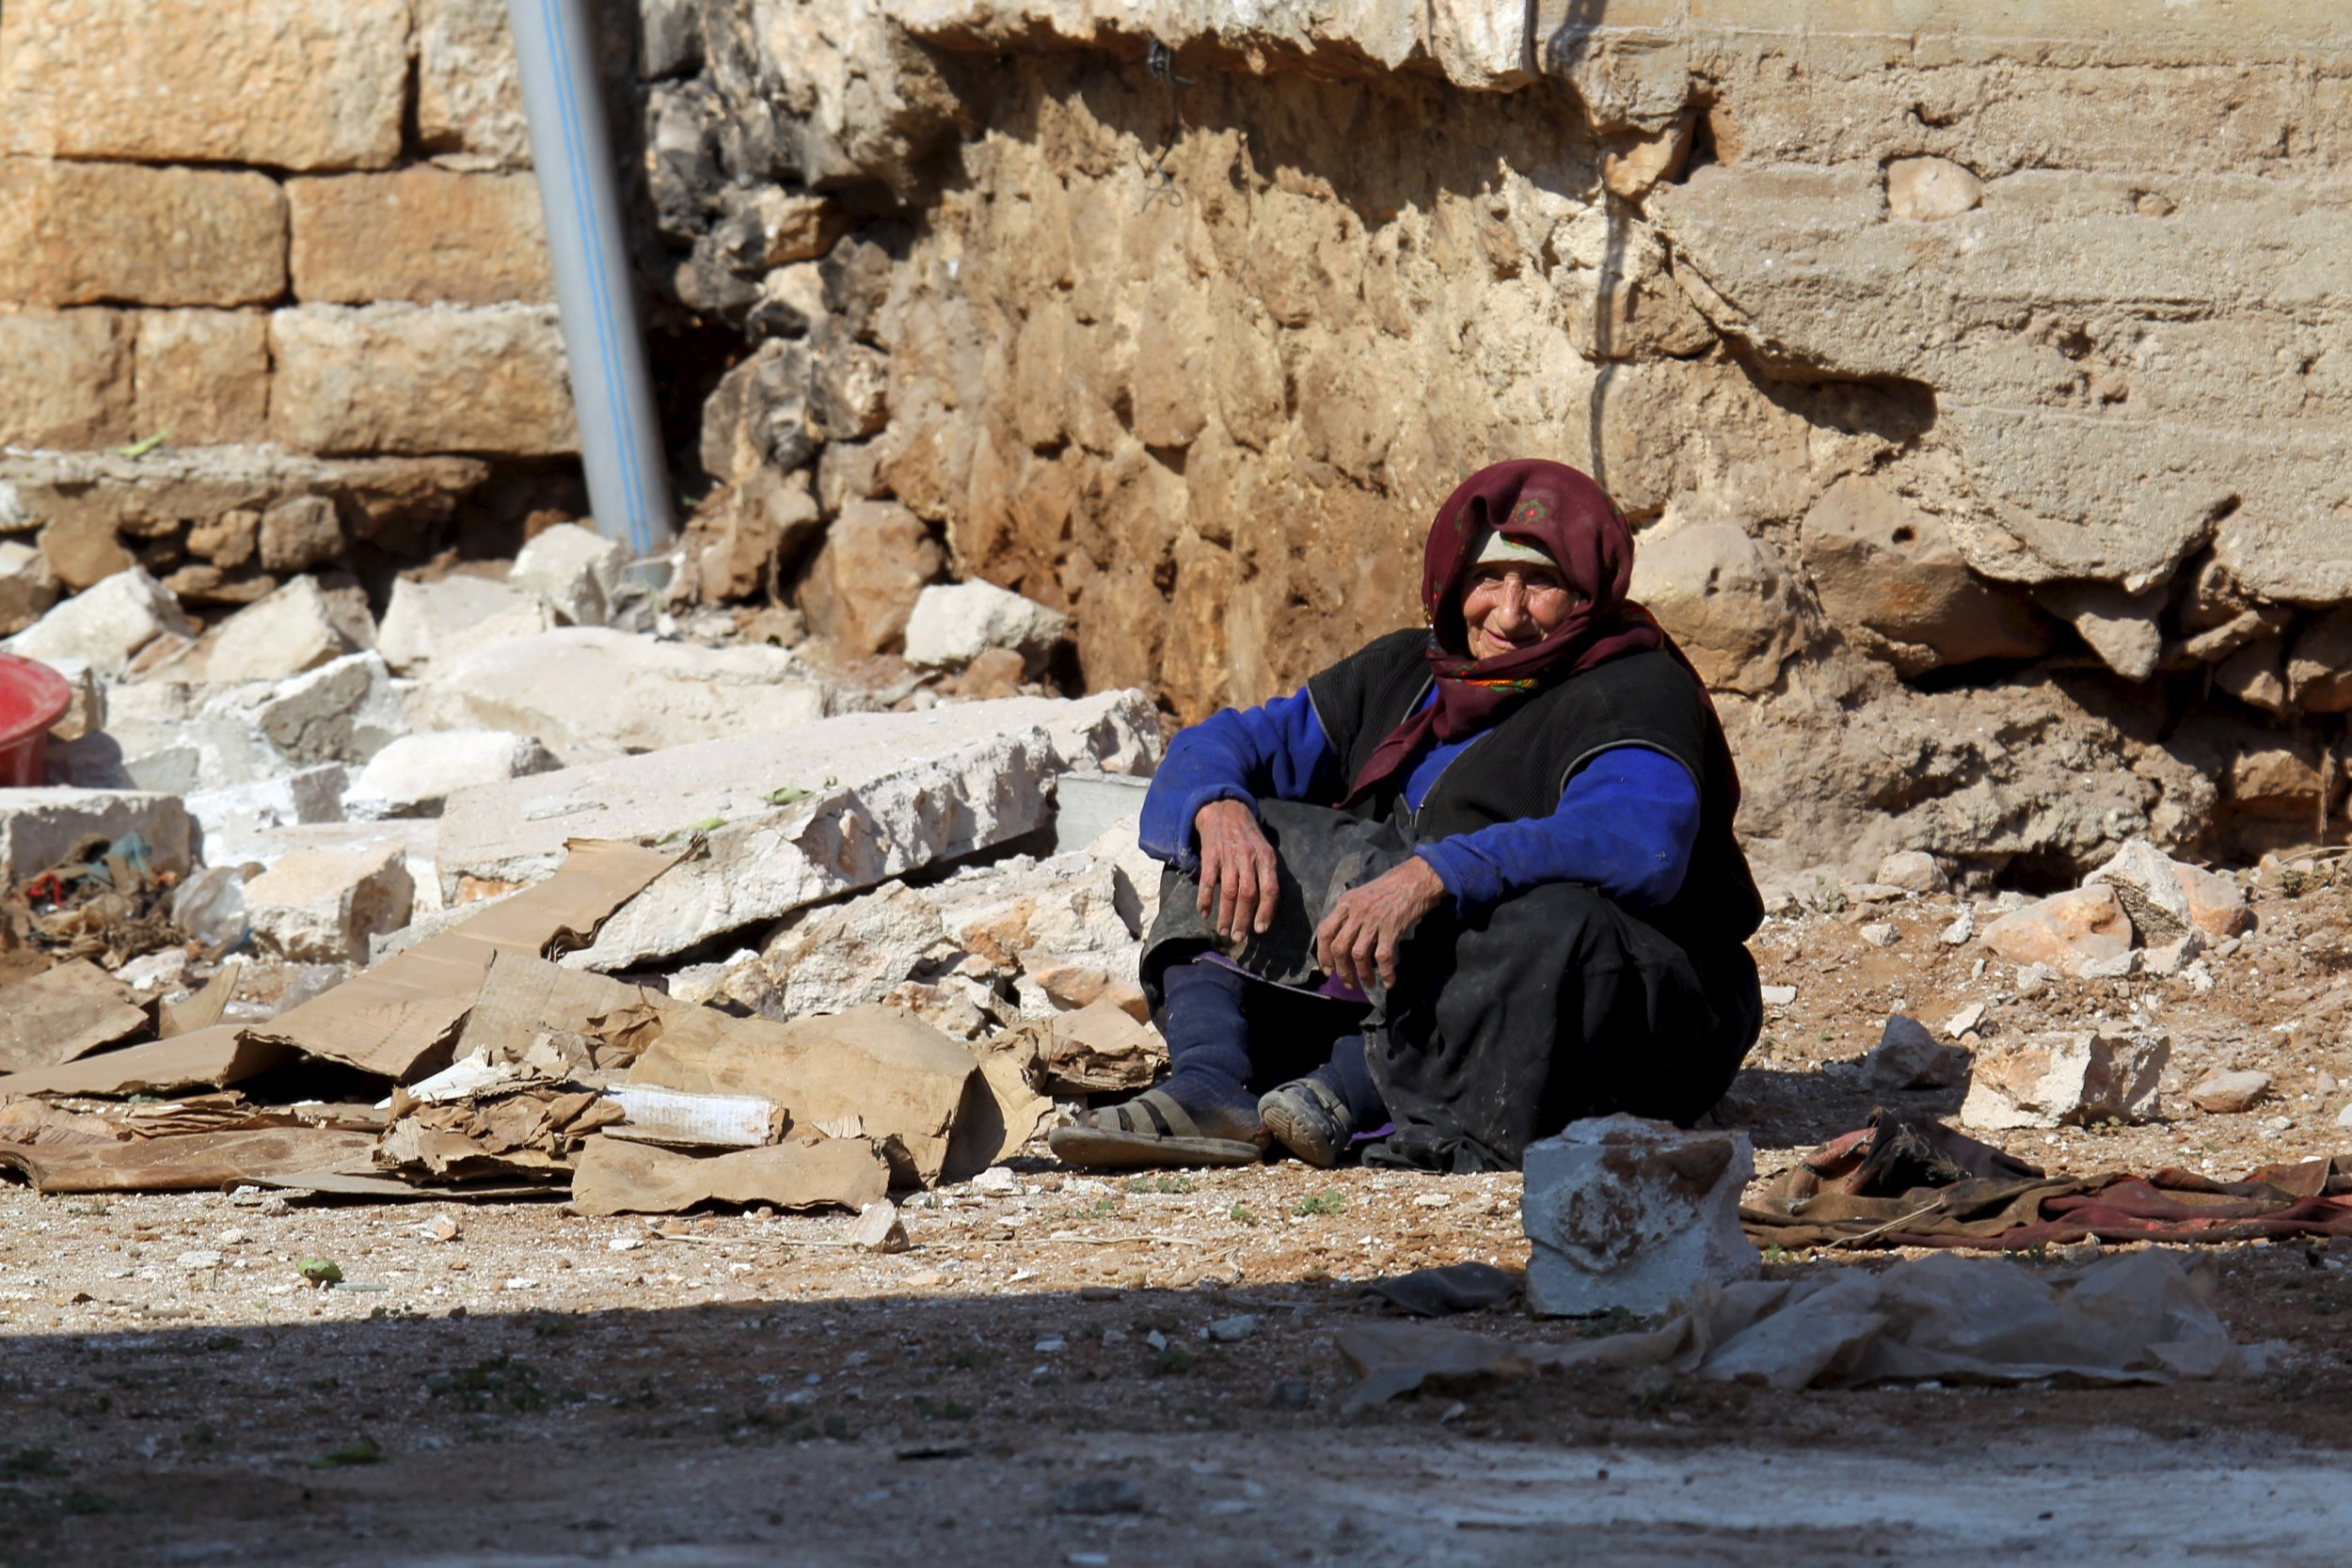 A woman rests on the ground in Aleppo.